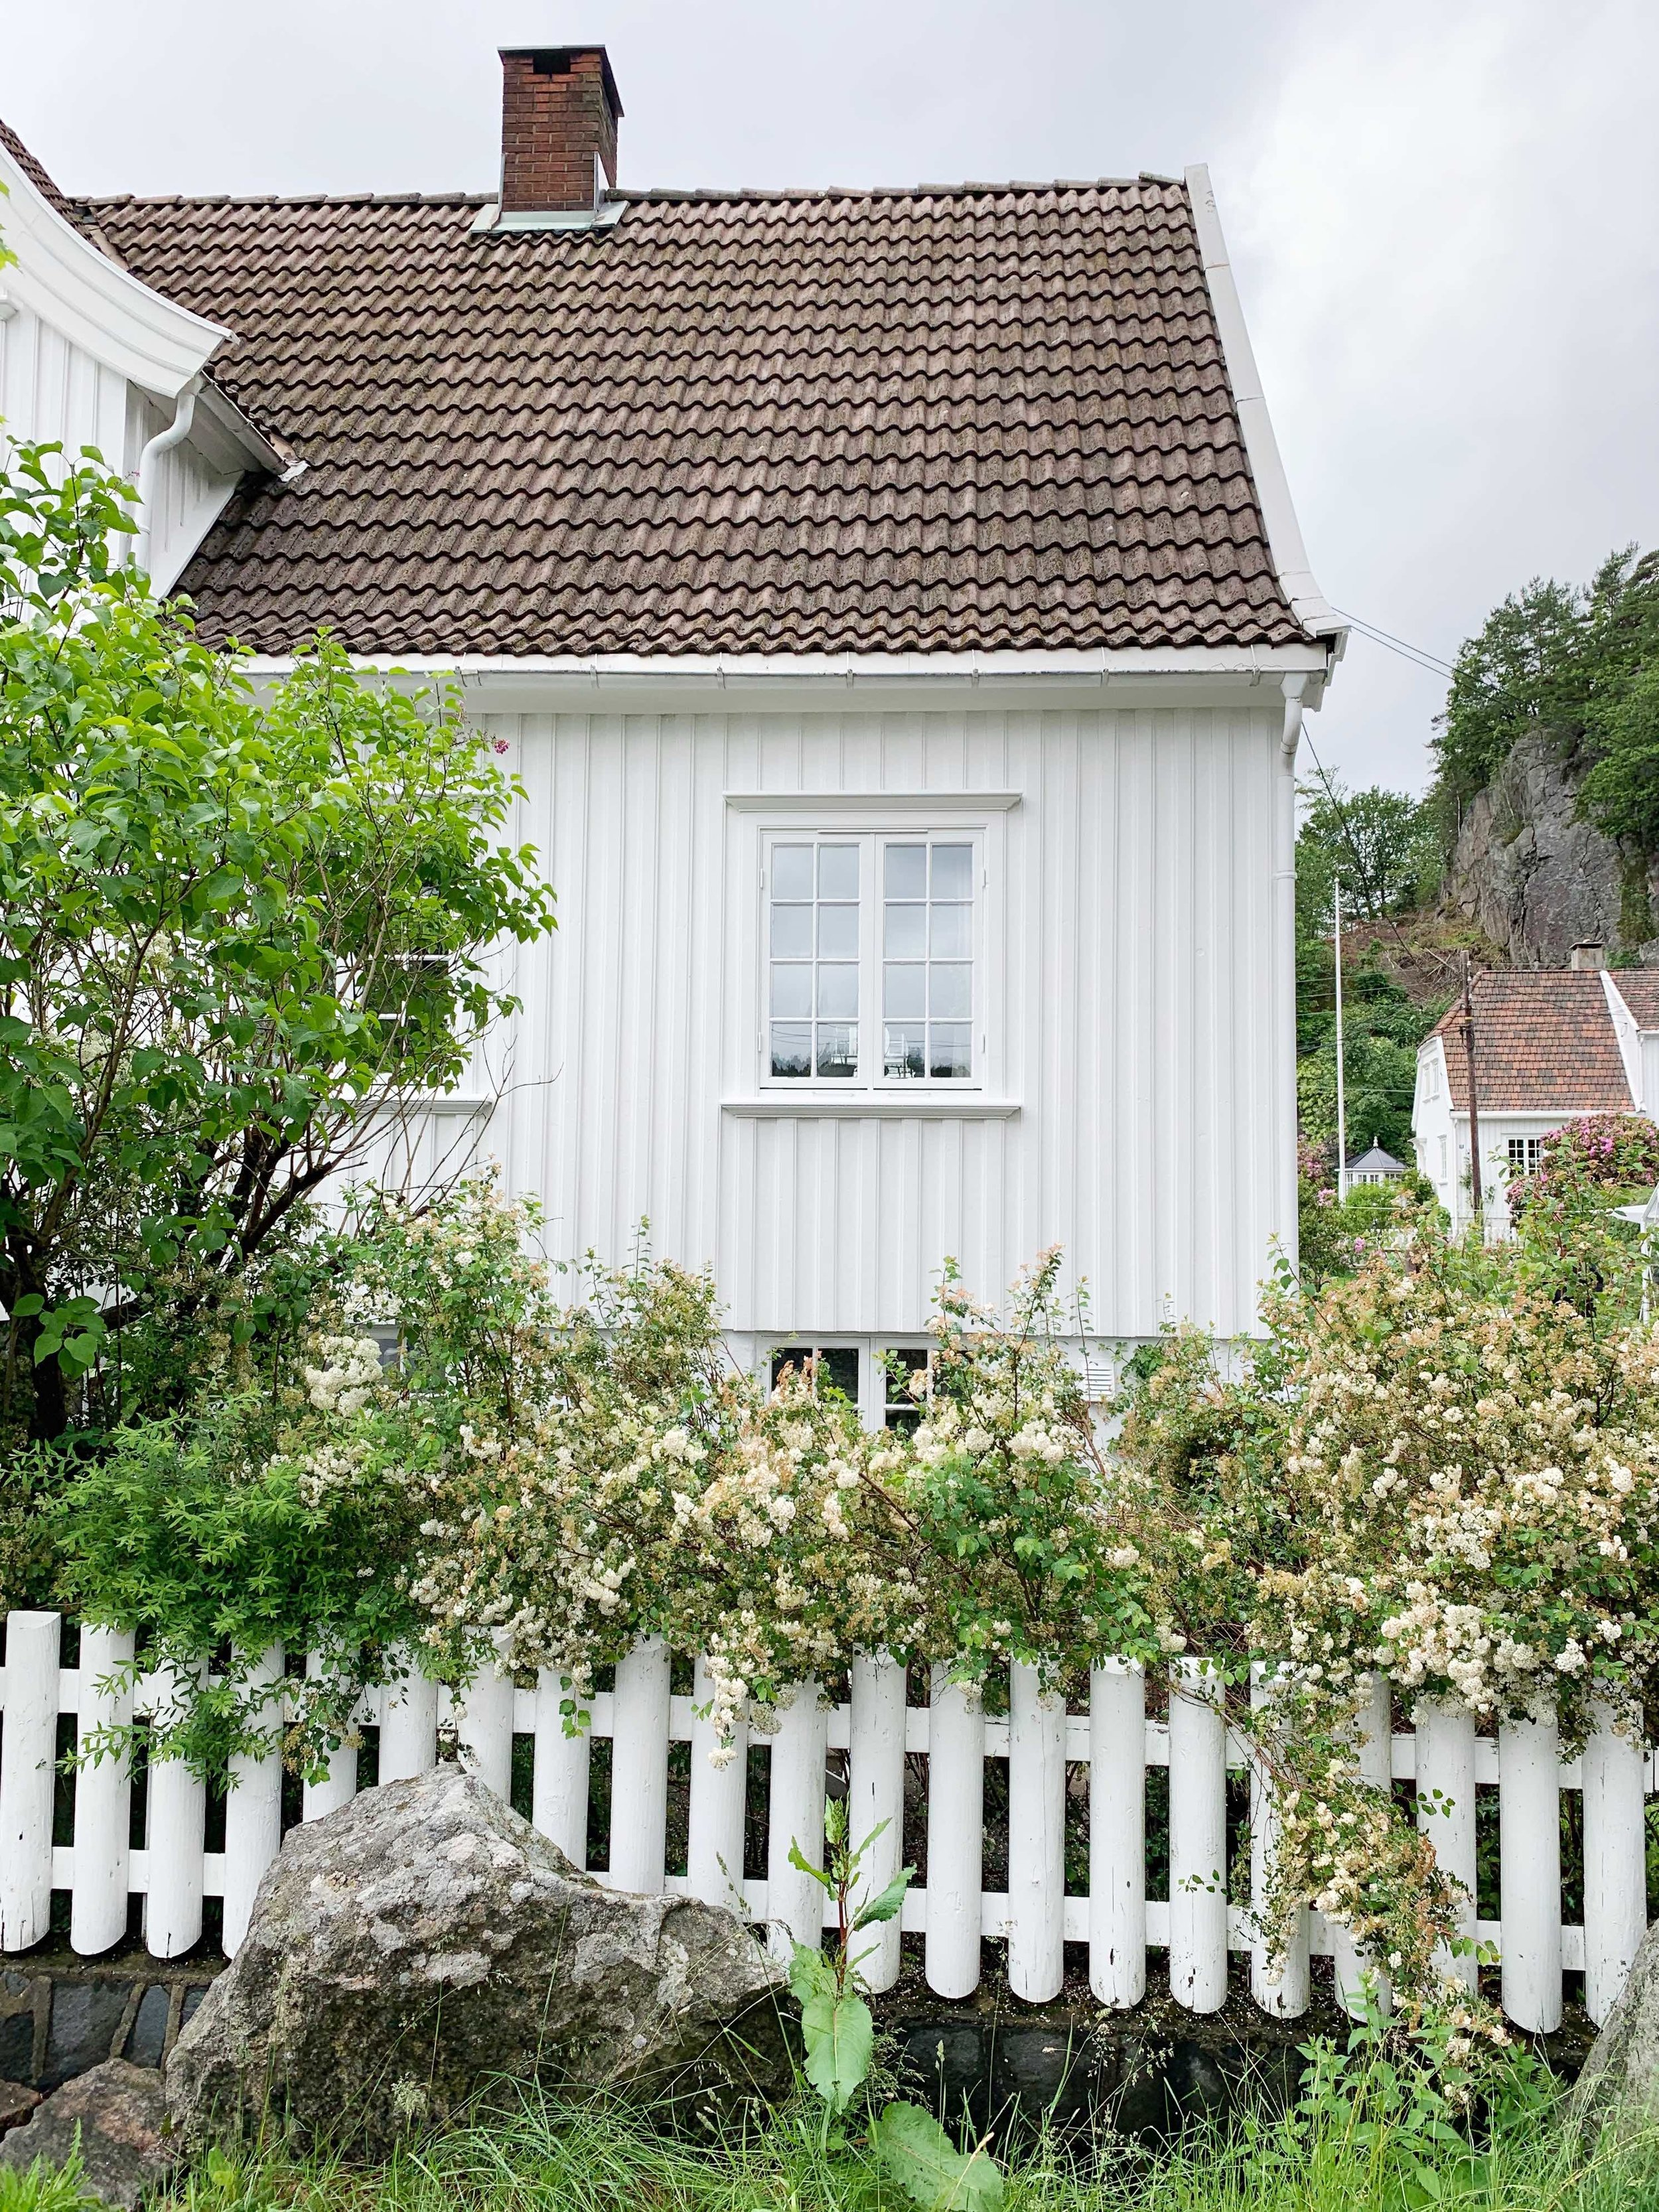 Kristiansand Wooden Houses Guide